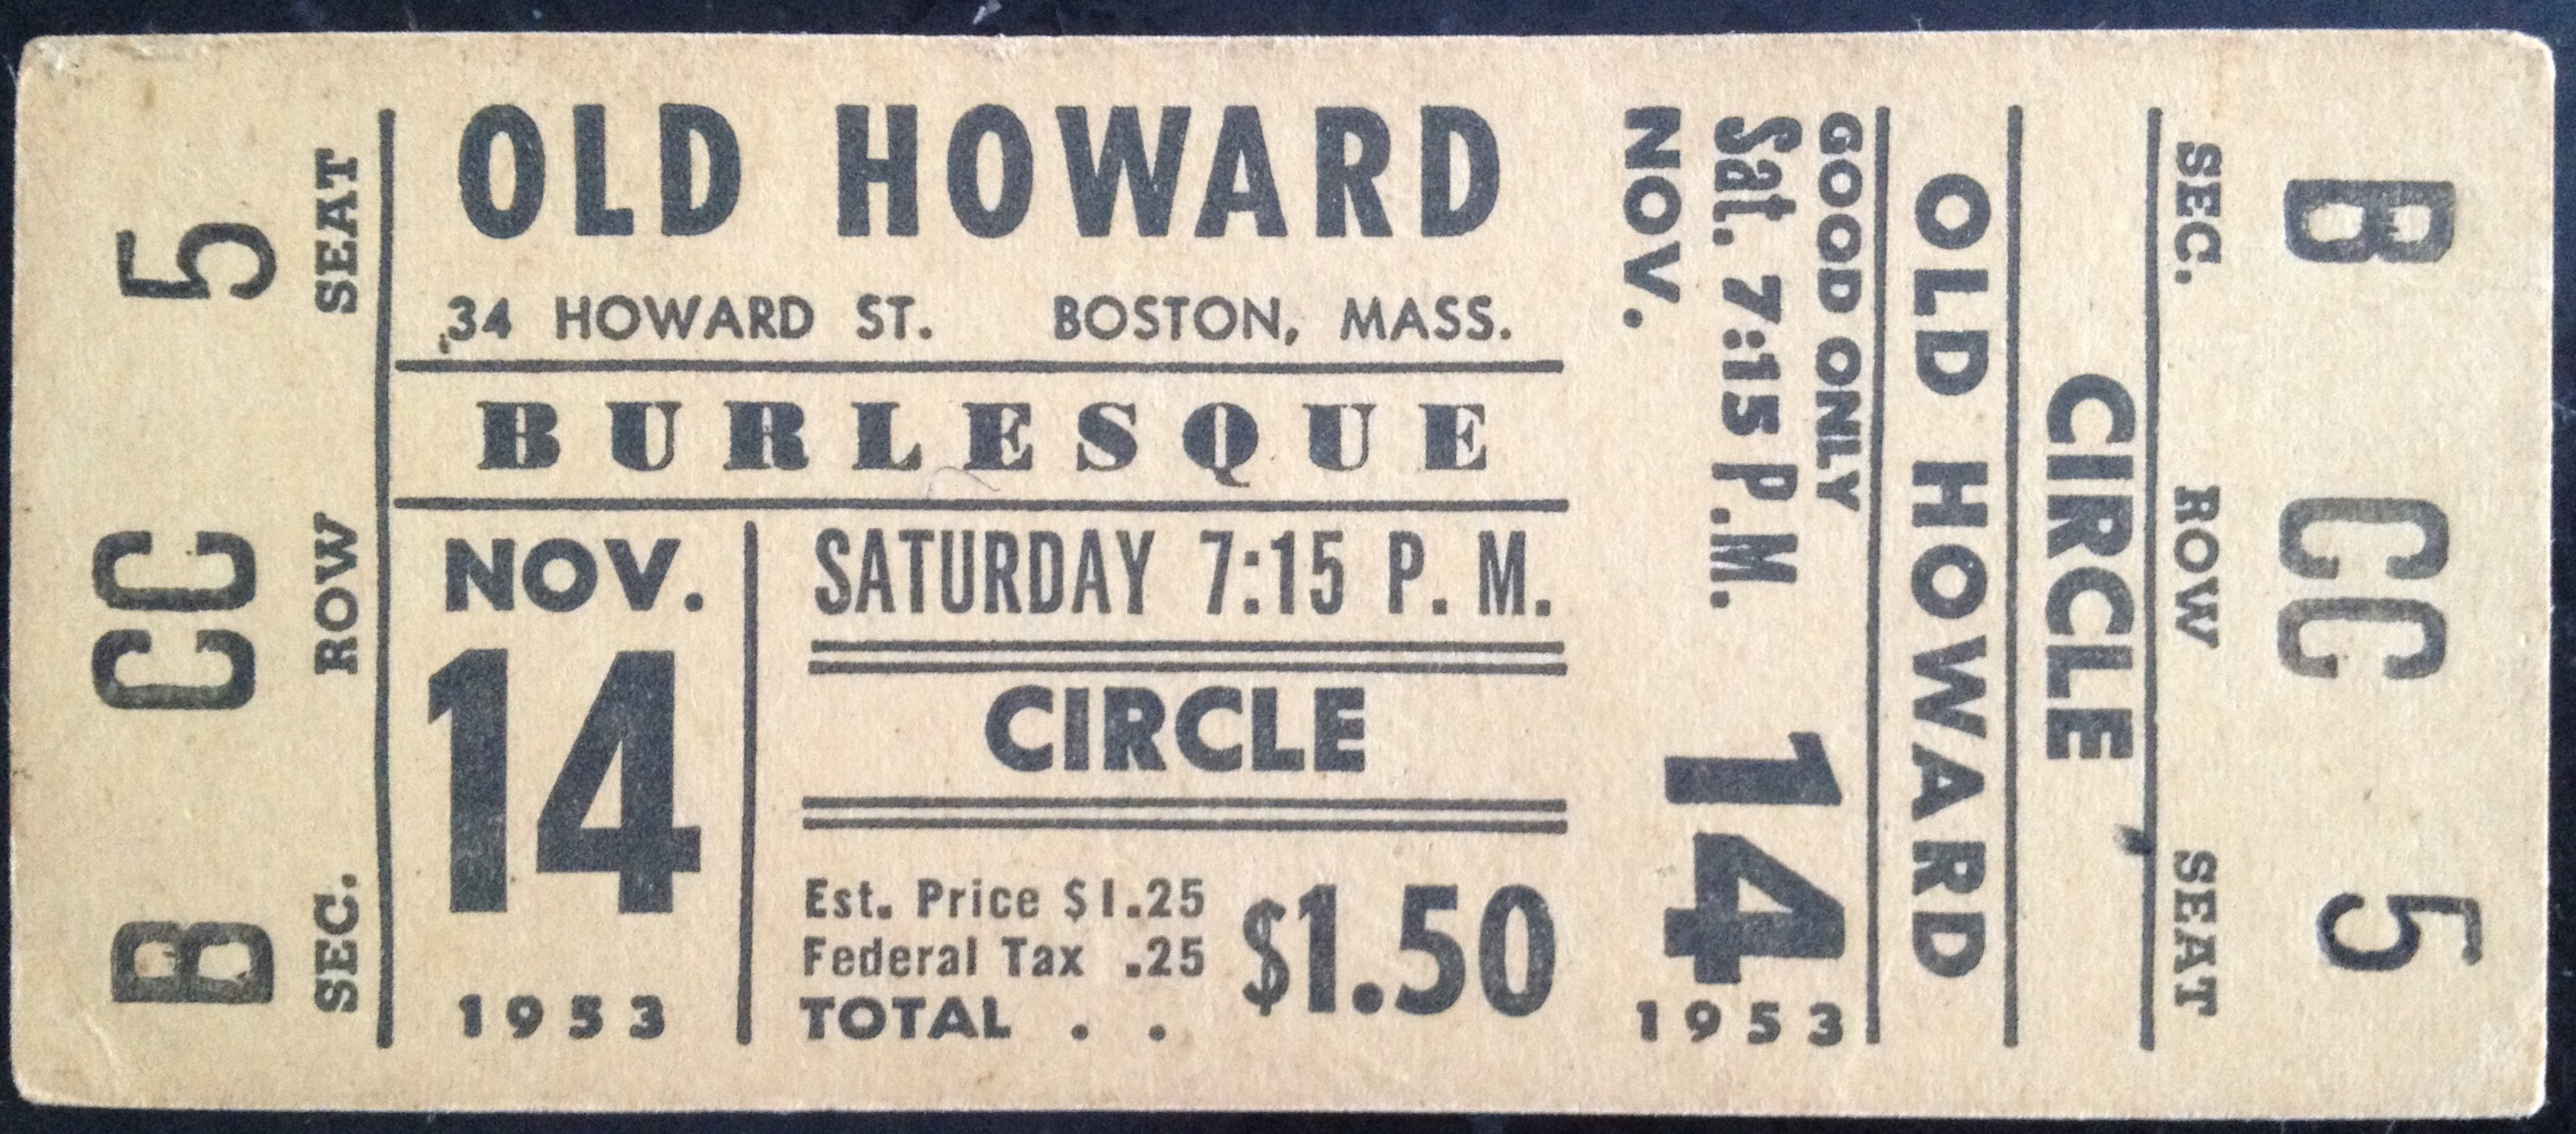 Old Boxing Tickets Wiring Diagrams James Clark Maxwell And Switched Capacitor Filters Eeweb Community Howard Rh Bambinomusical Com At The 1968 Summer Olympics Ring